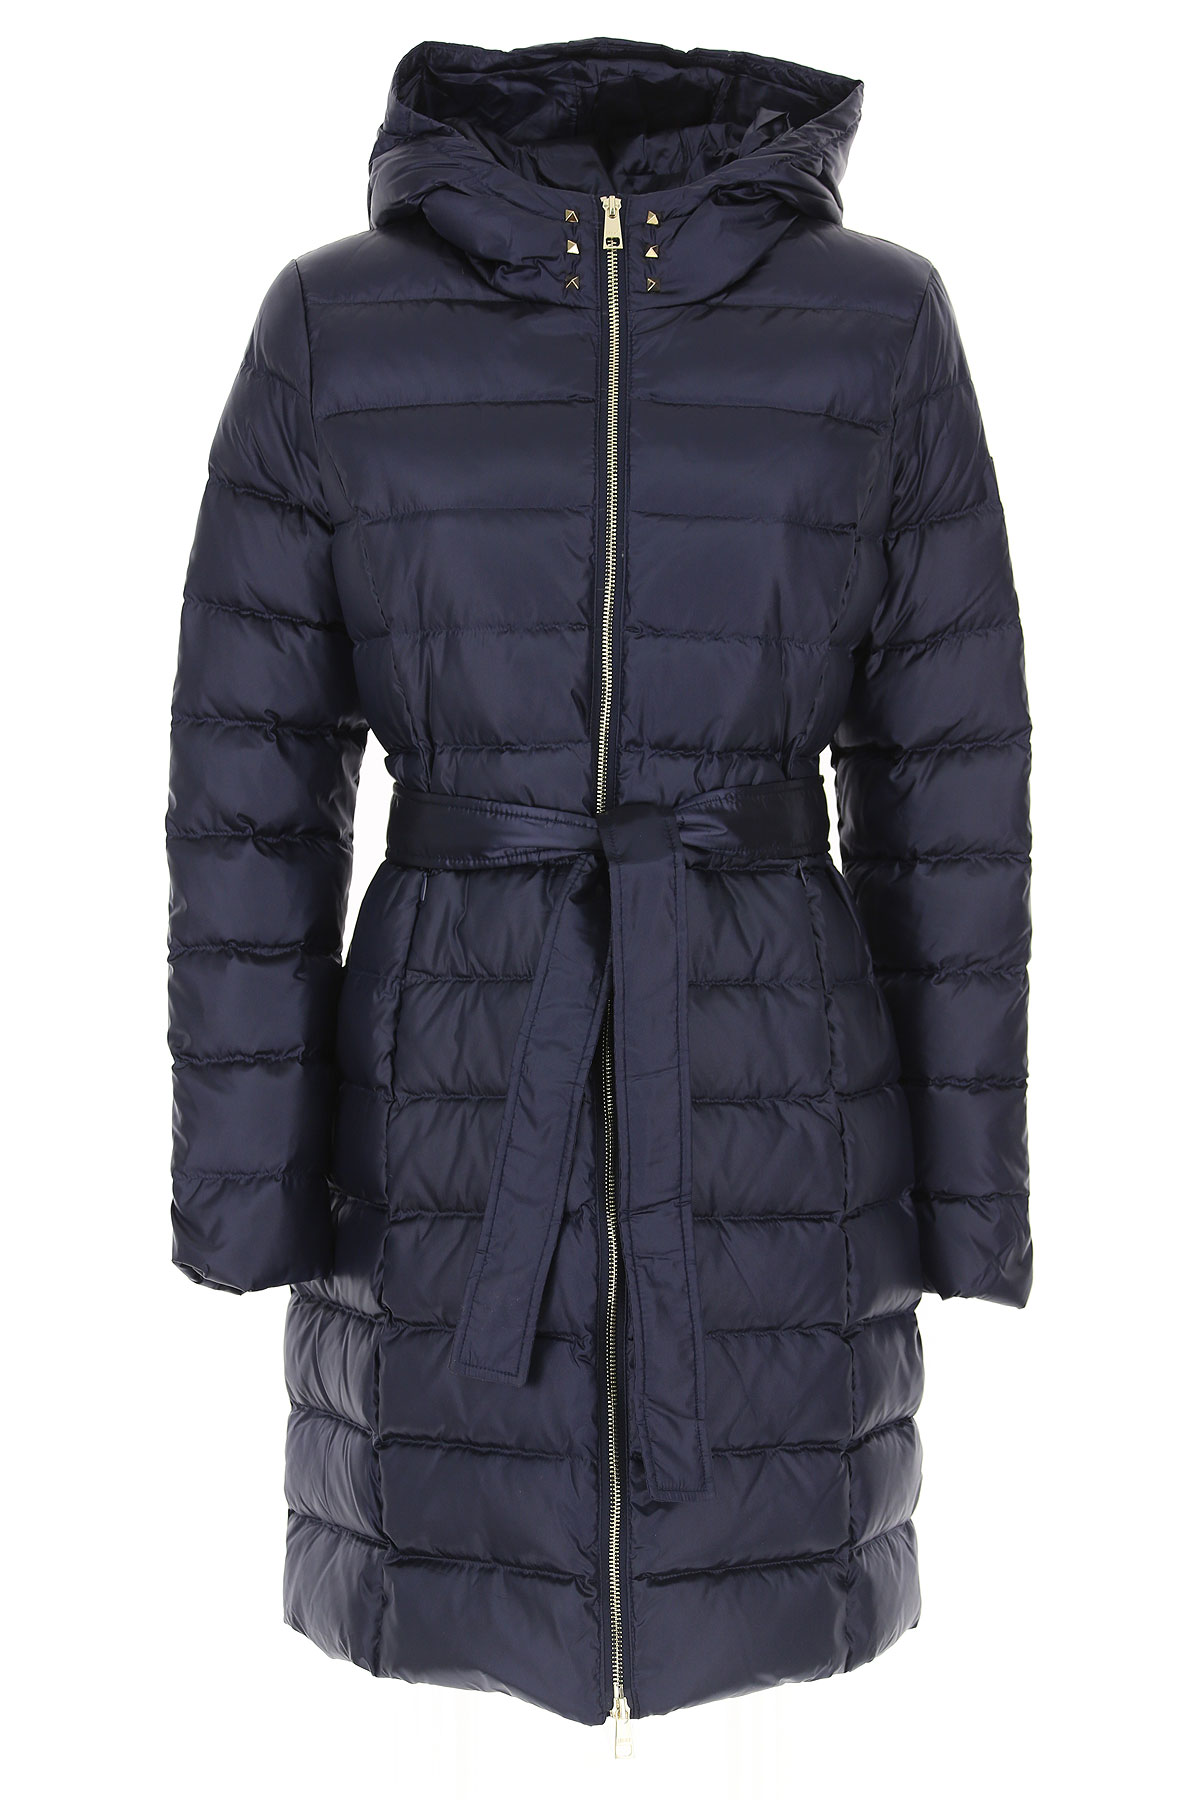 Image of Liu Jo Down Jacket for Women, Puffer Ski Jacket, Indescent Blue, polyester, 2017, 10 4 6 8